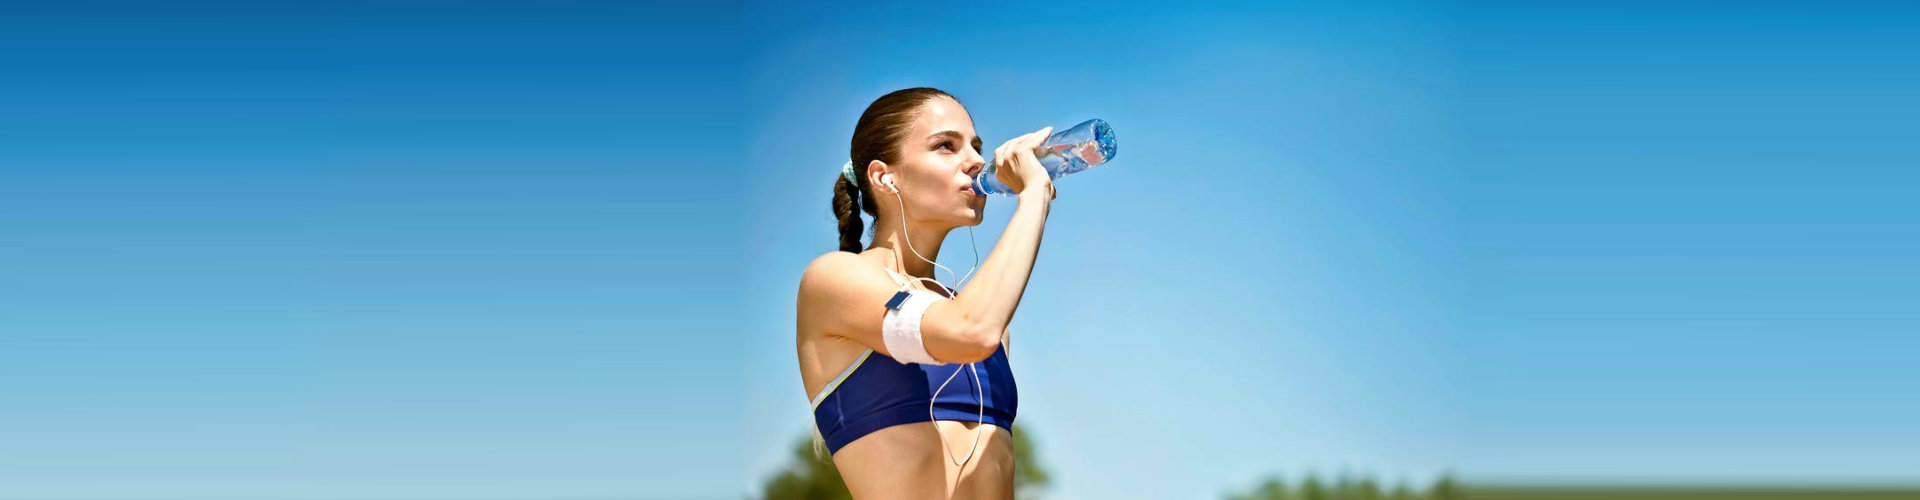 woman on a jogging drinking her water